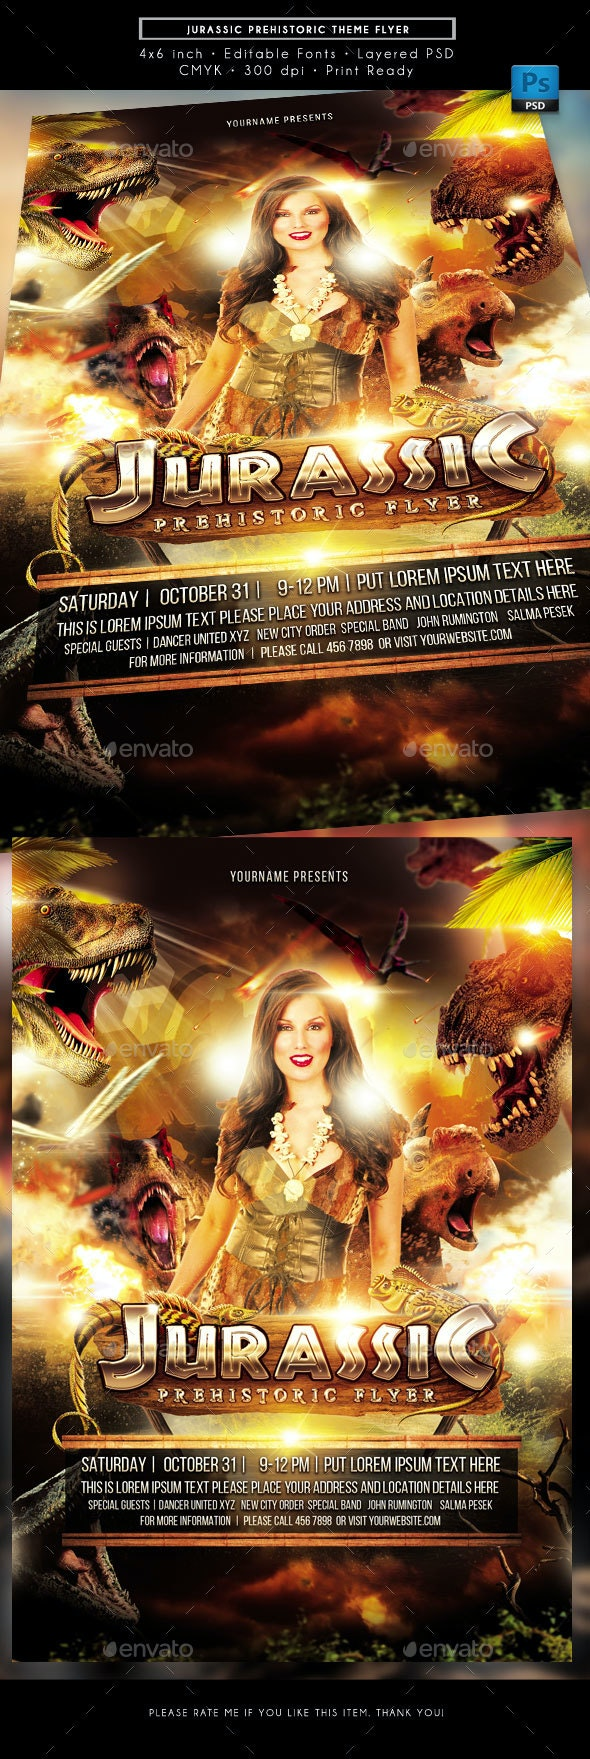 Jurassic Prehistoric Theme Event Flyer - Events Flyers